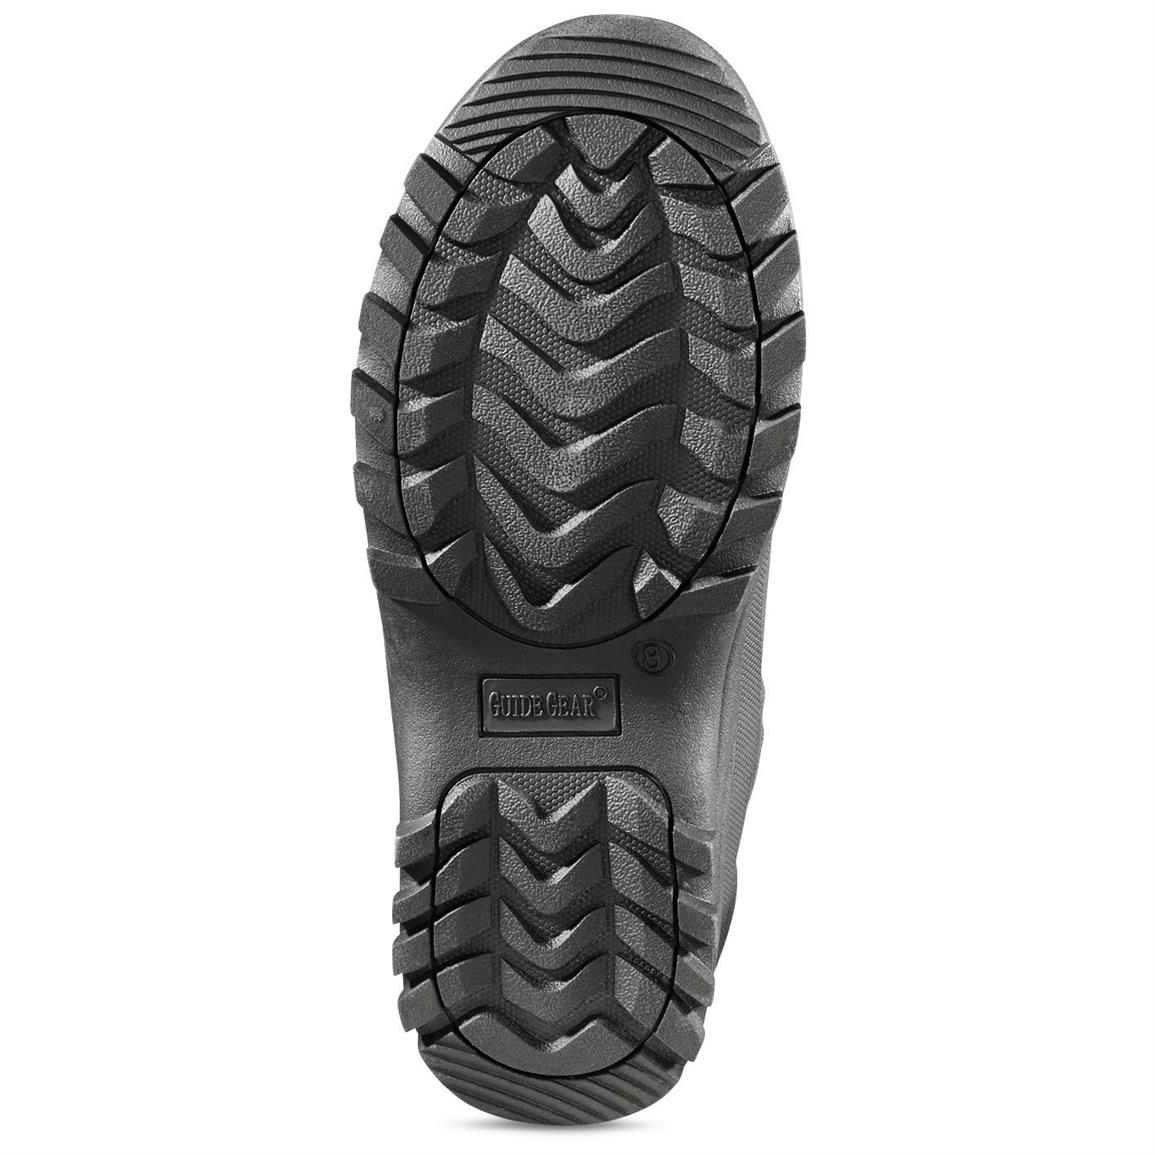 Aggressive rubber outsole propels you the distance with top traction in virtually any terrain